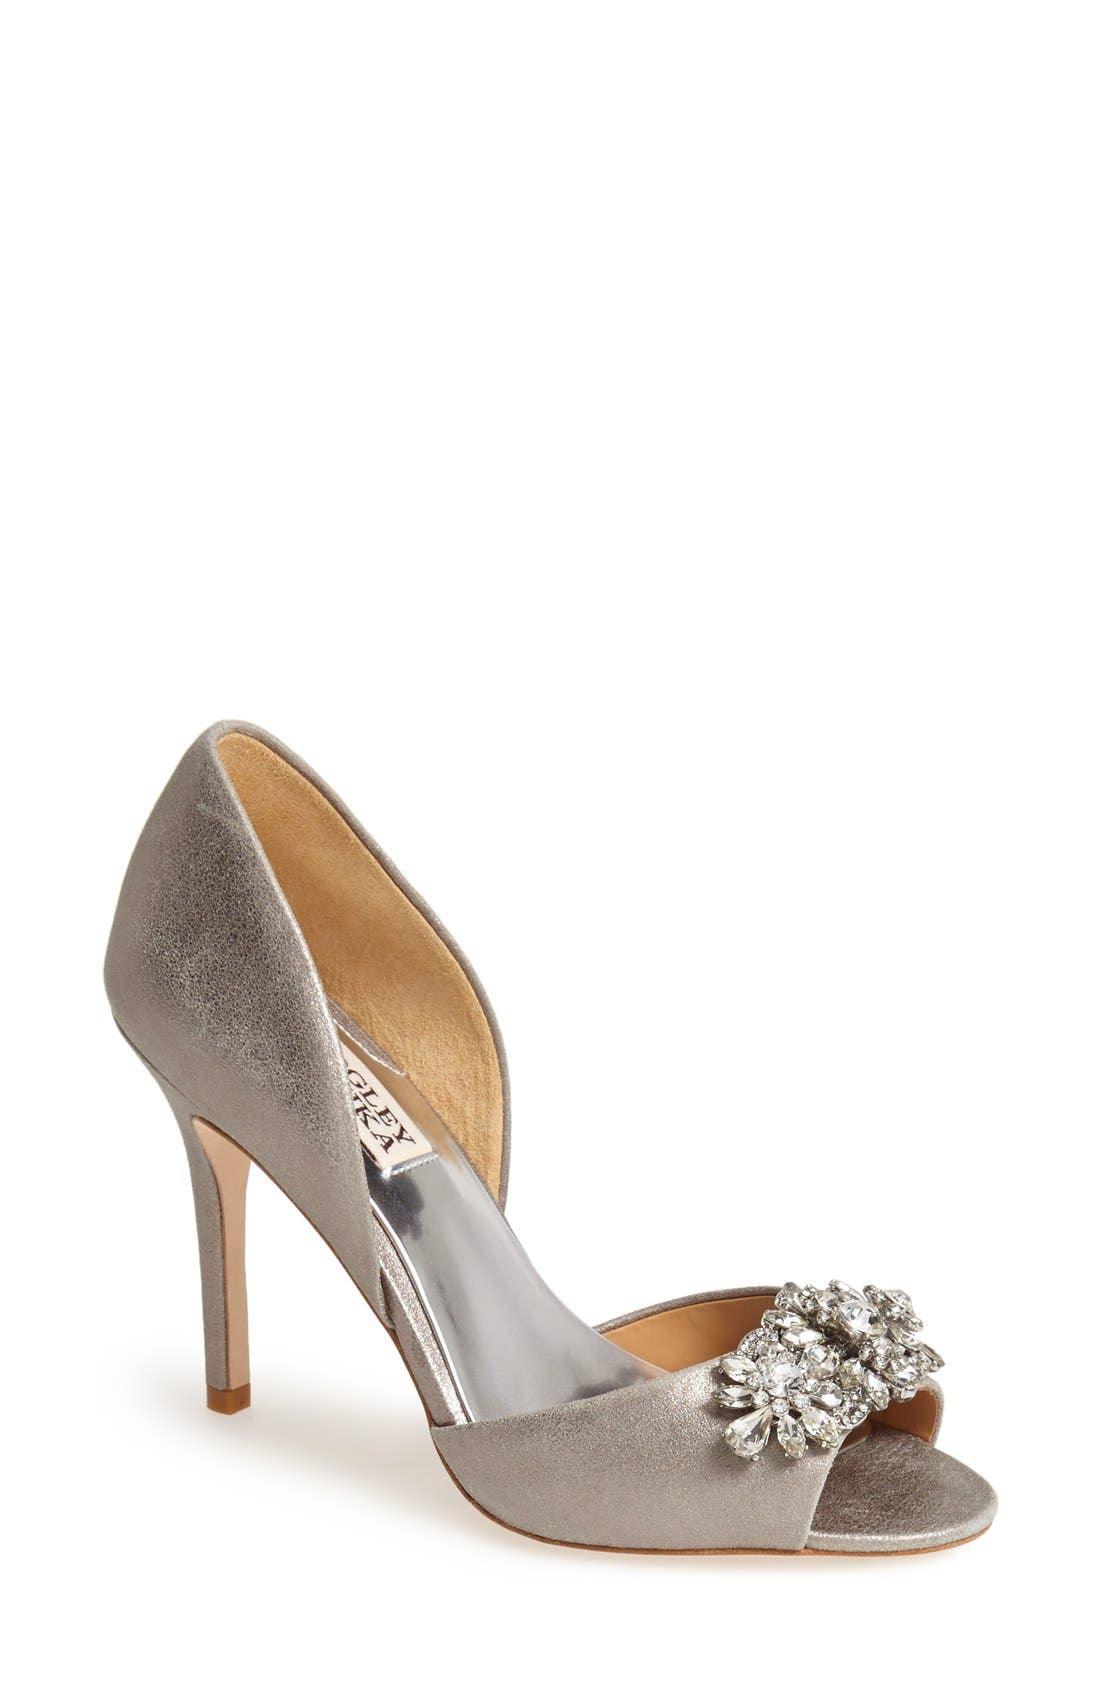 'Giana' Satin d'Orsay Pump,                         Main,                         color, Pewter